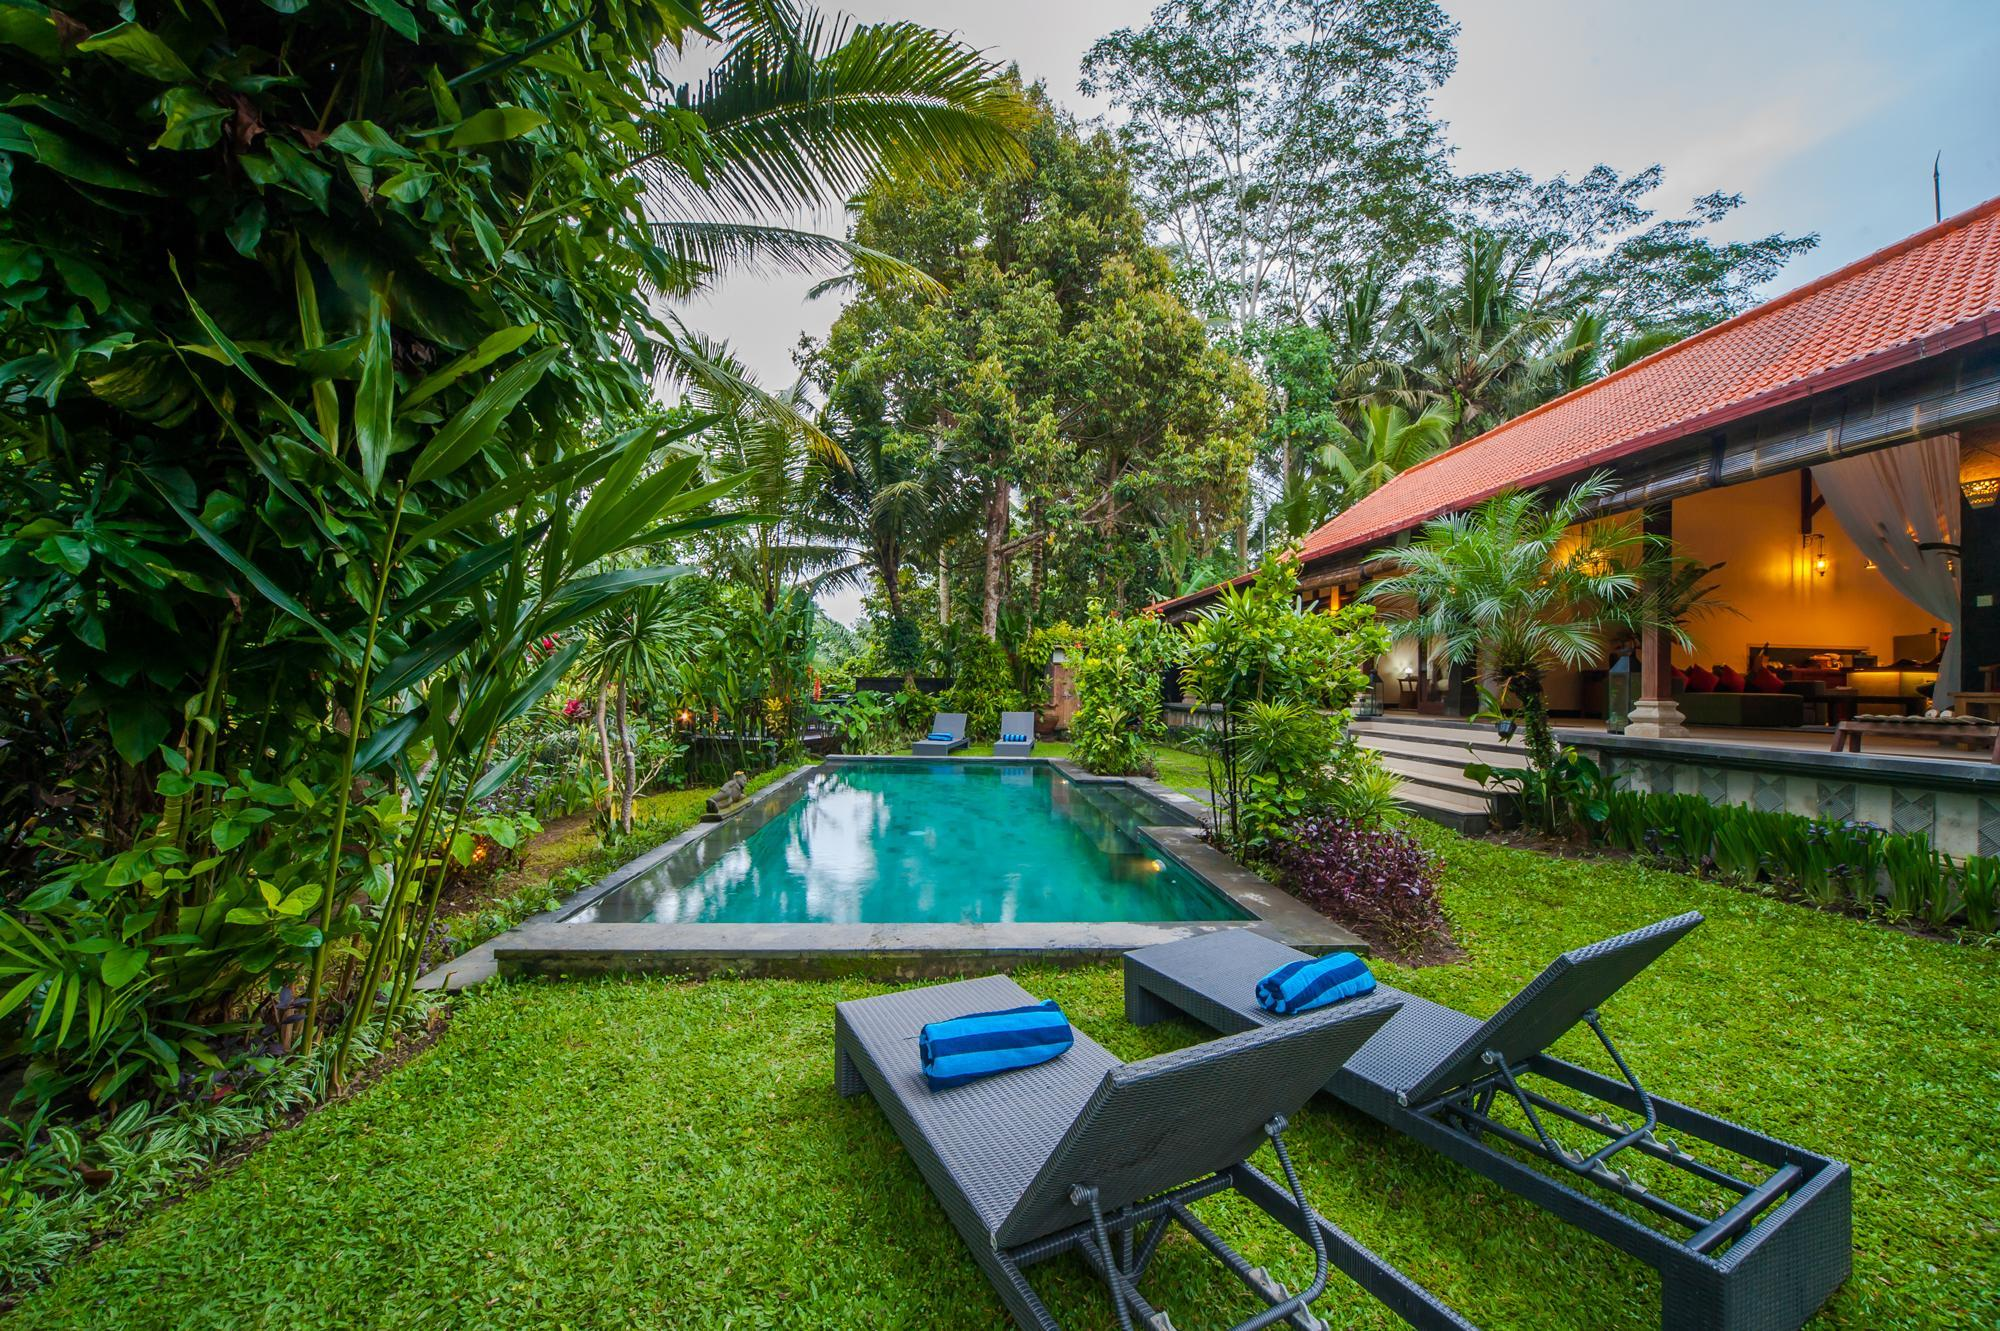 Tranquil Villa With Lush Gardens And Private Pool